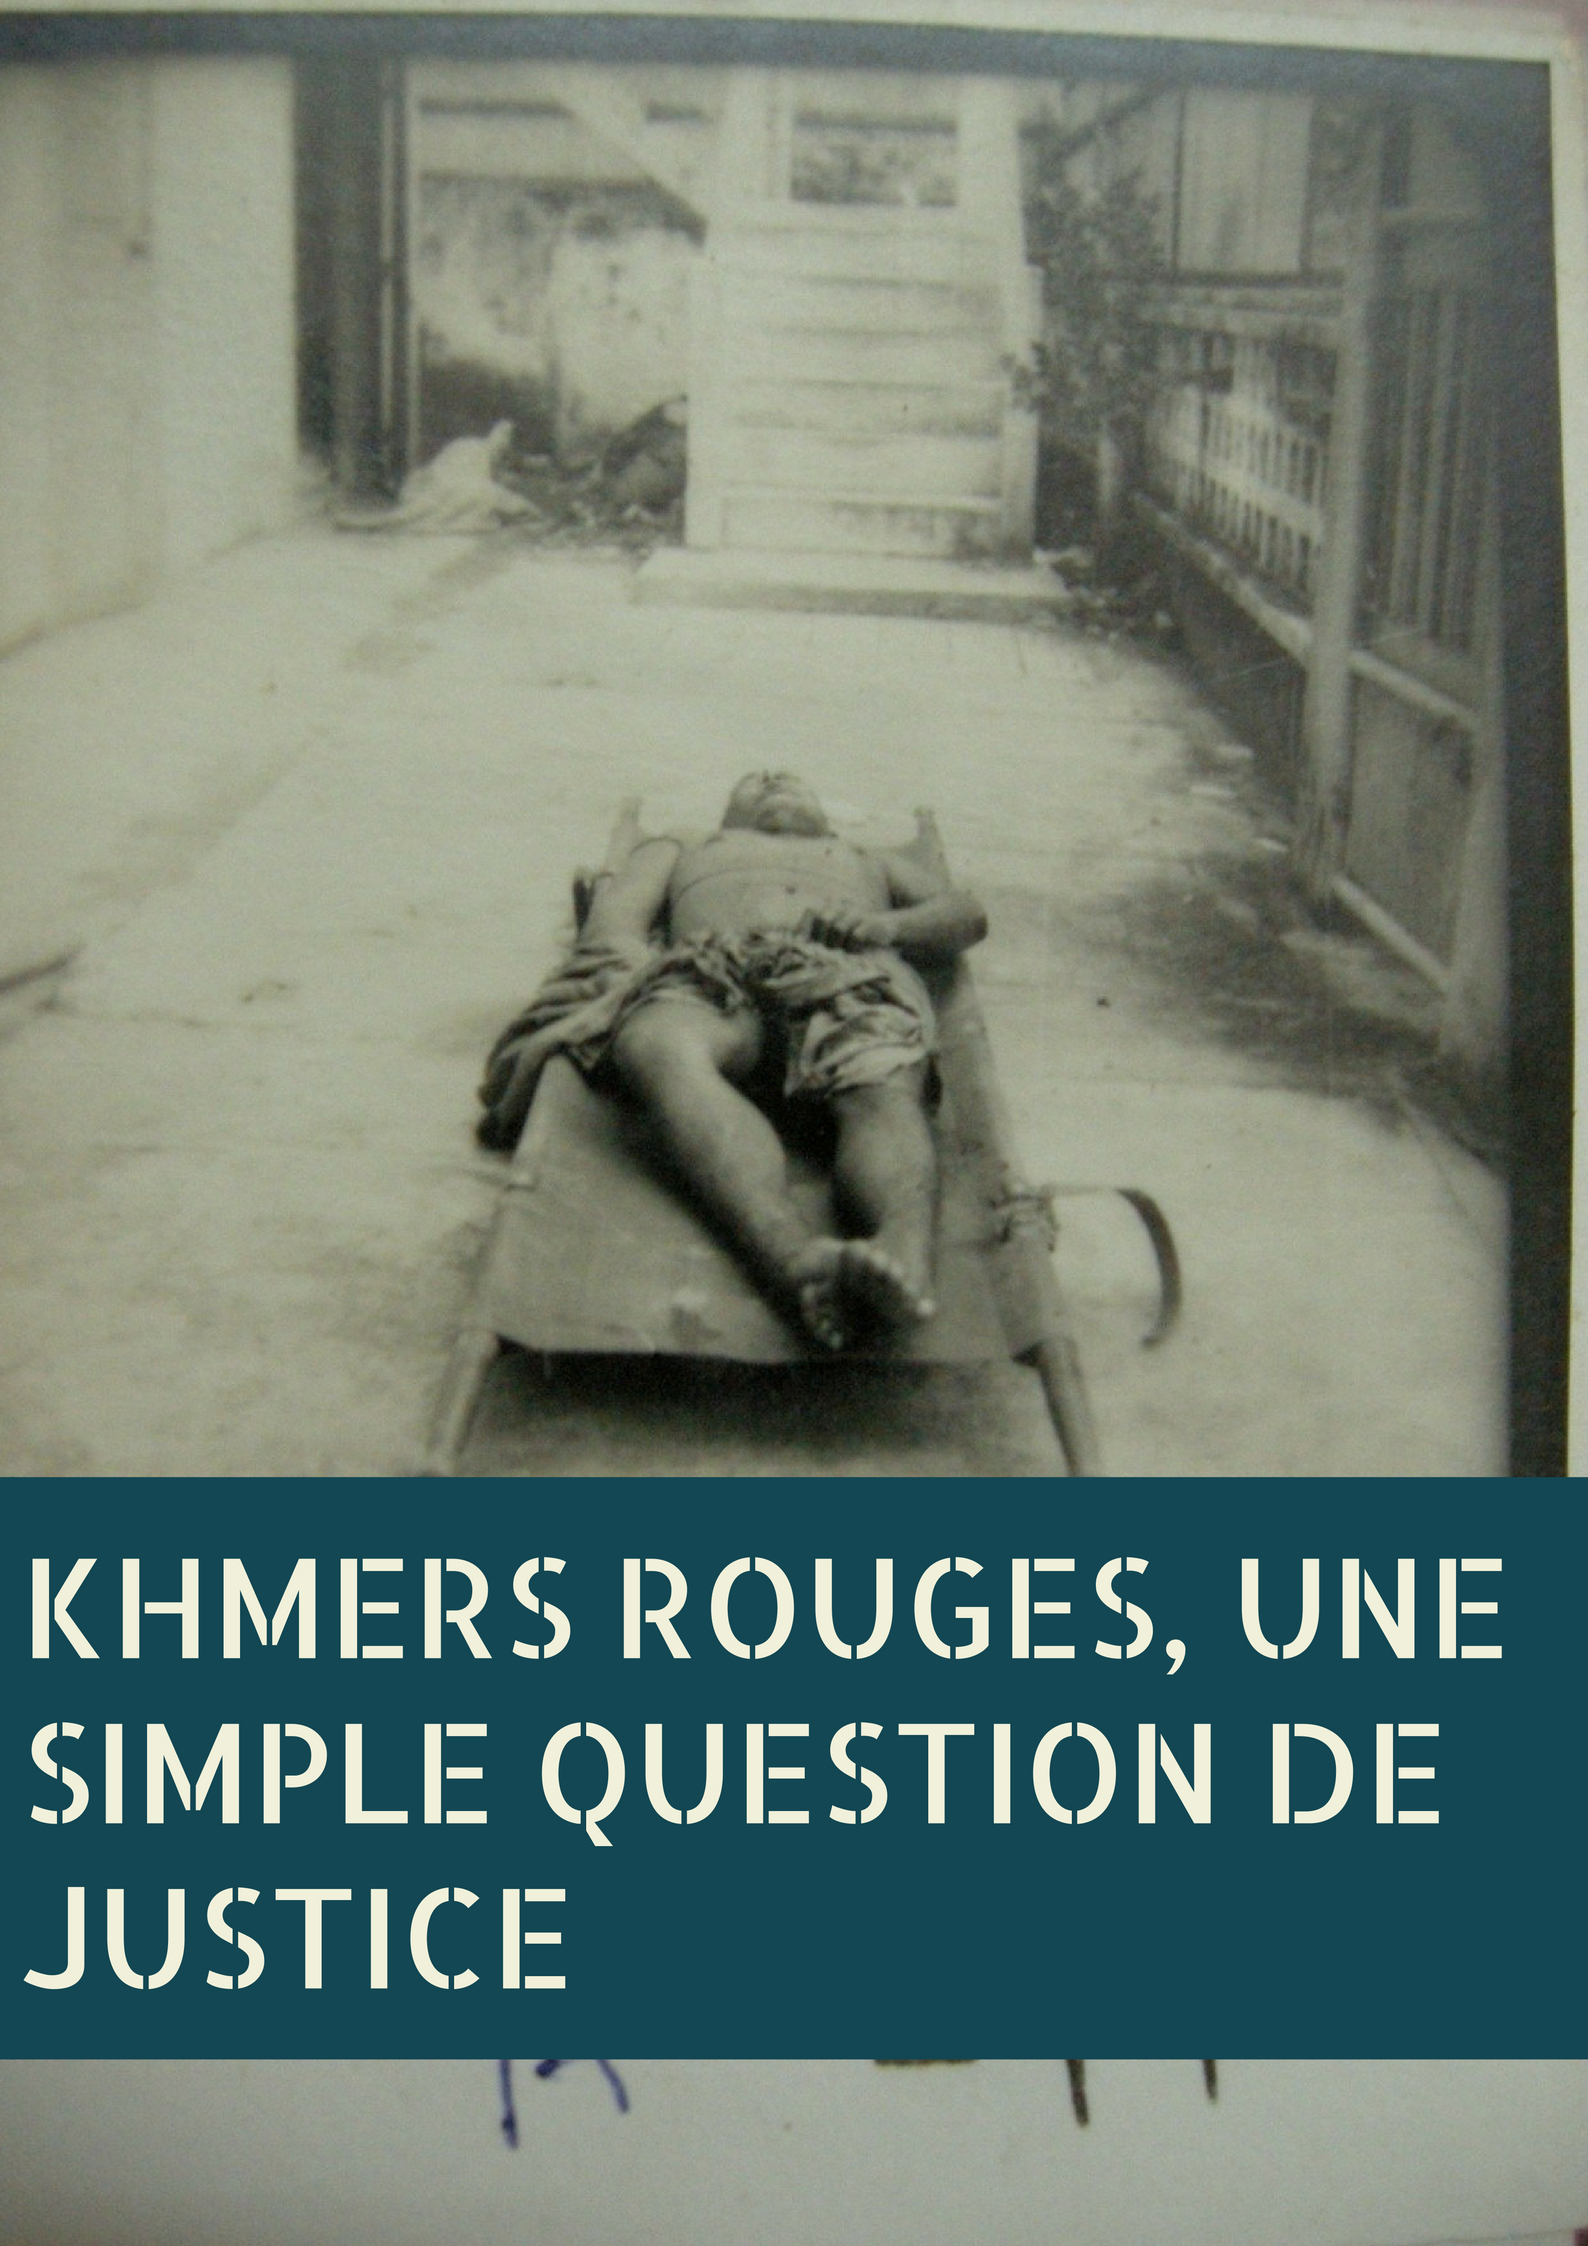 Khmers rouges, une simple question de justice | Laine, Rémi (Réalisateur)